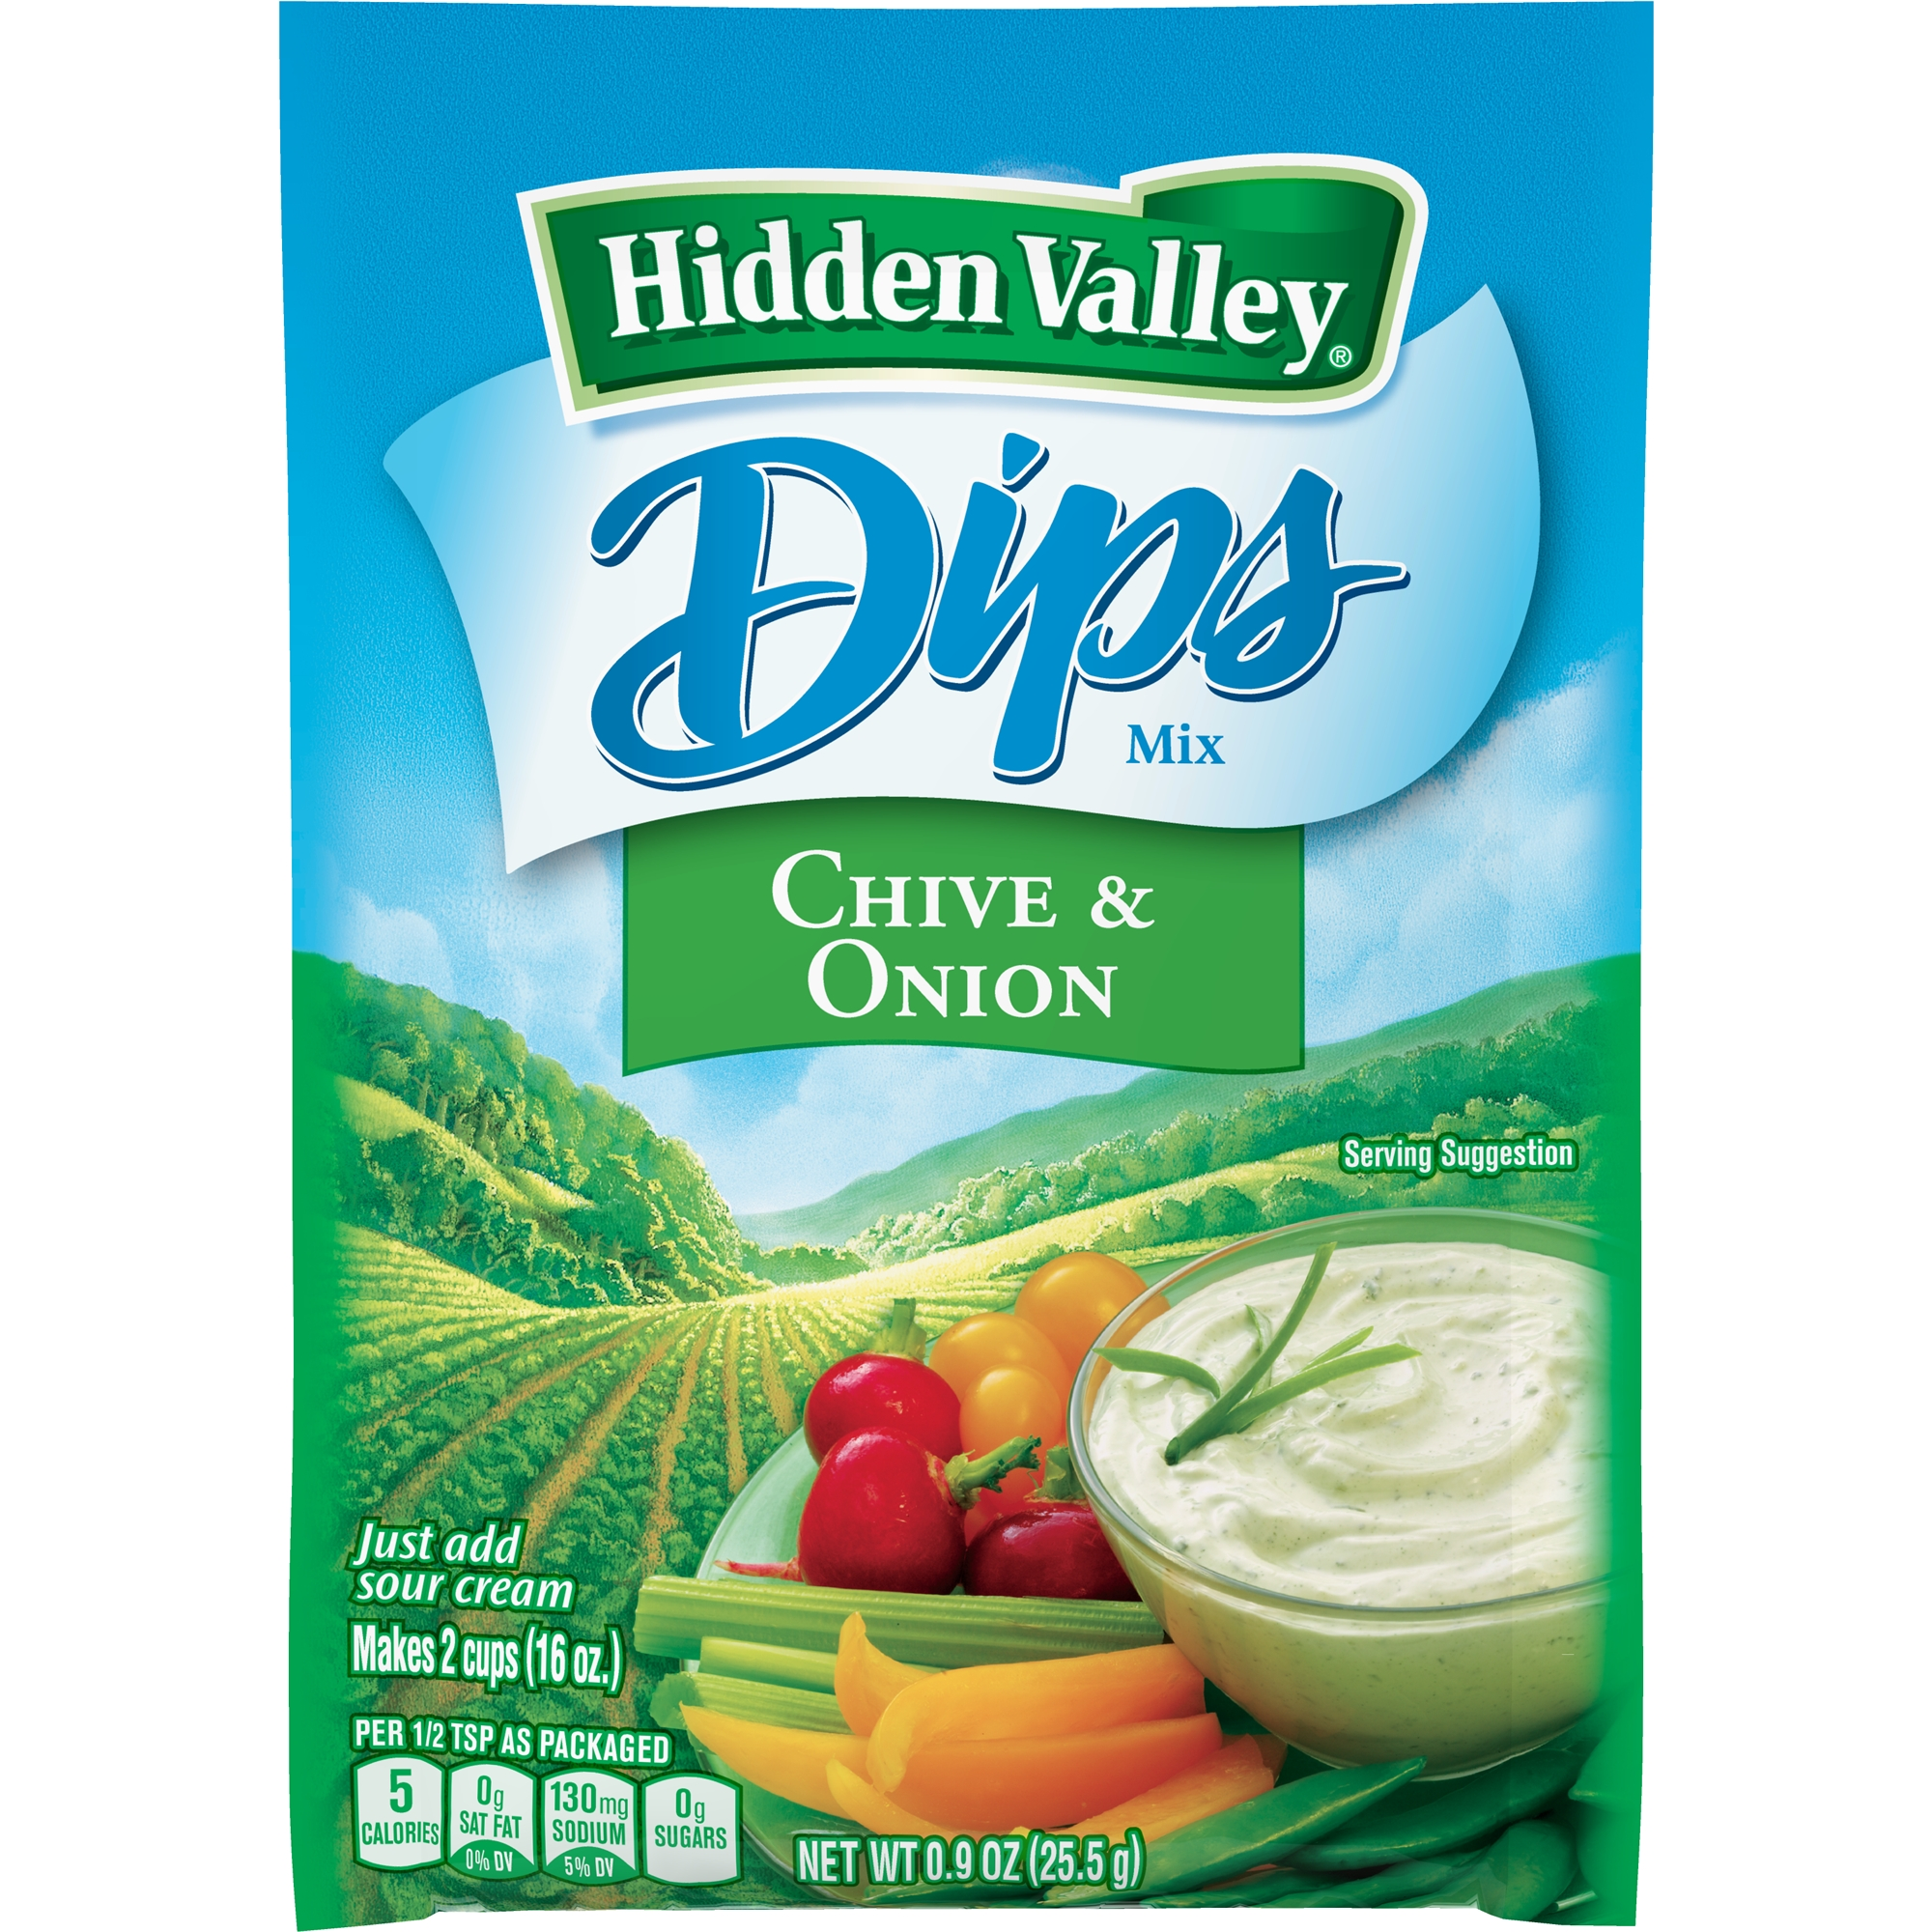 Hidden Valley Chive & Onion Dips Mix, Gluten Free -  1 Packet